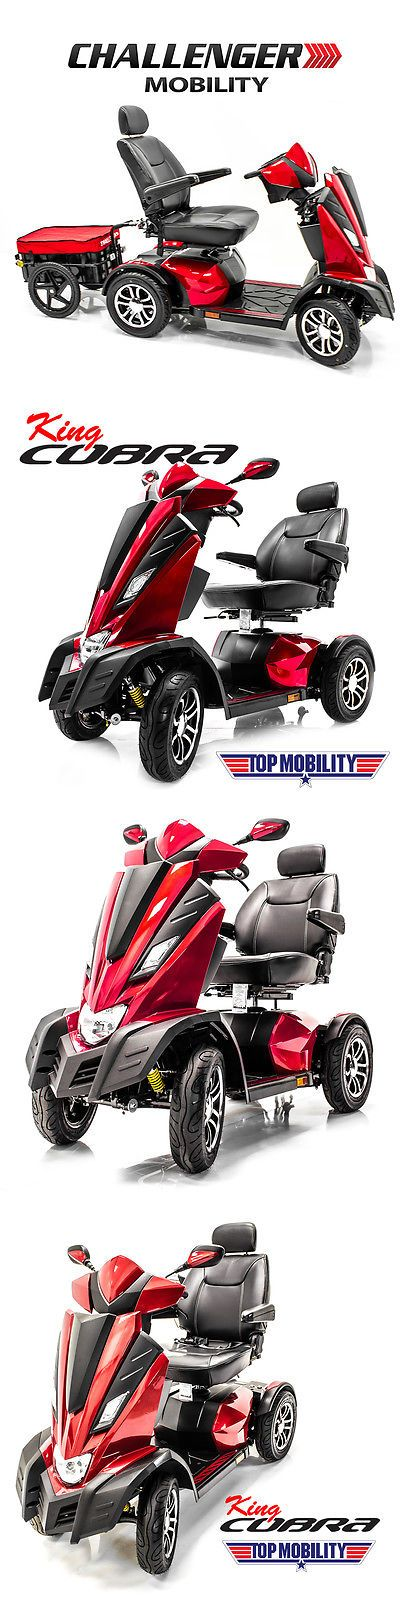 Mobility Scooter Parts: King Cobra Heavy Duty Power Electric Mobility Scooter 22 Seat + Free Trailer -> BUY IT NOW ONLY: $5249 on eBay!